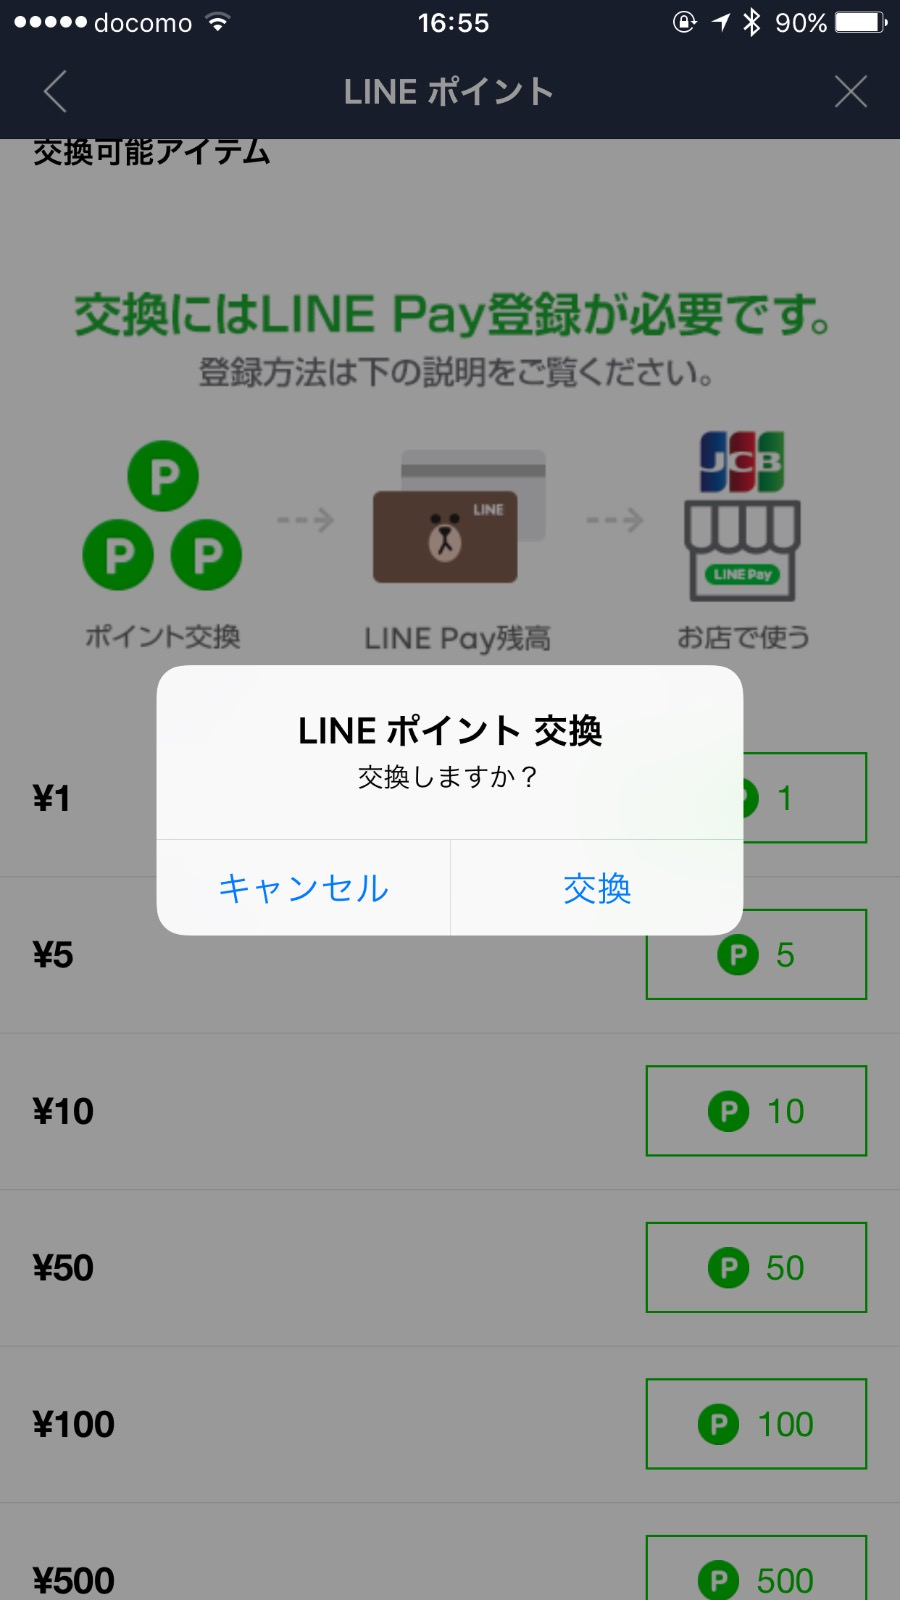 Line pay card point 0669